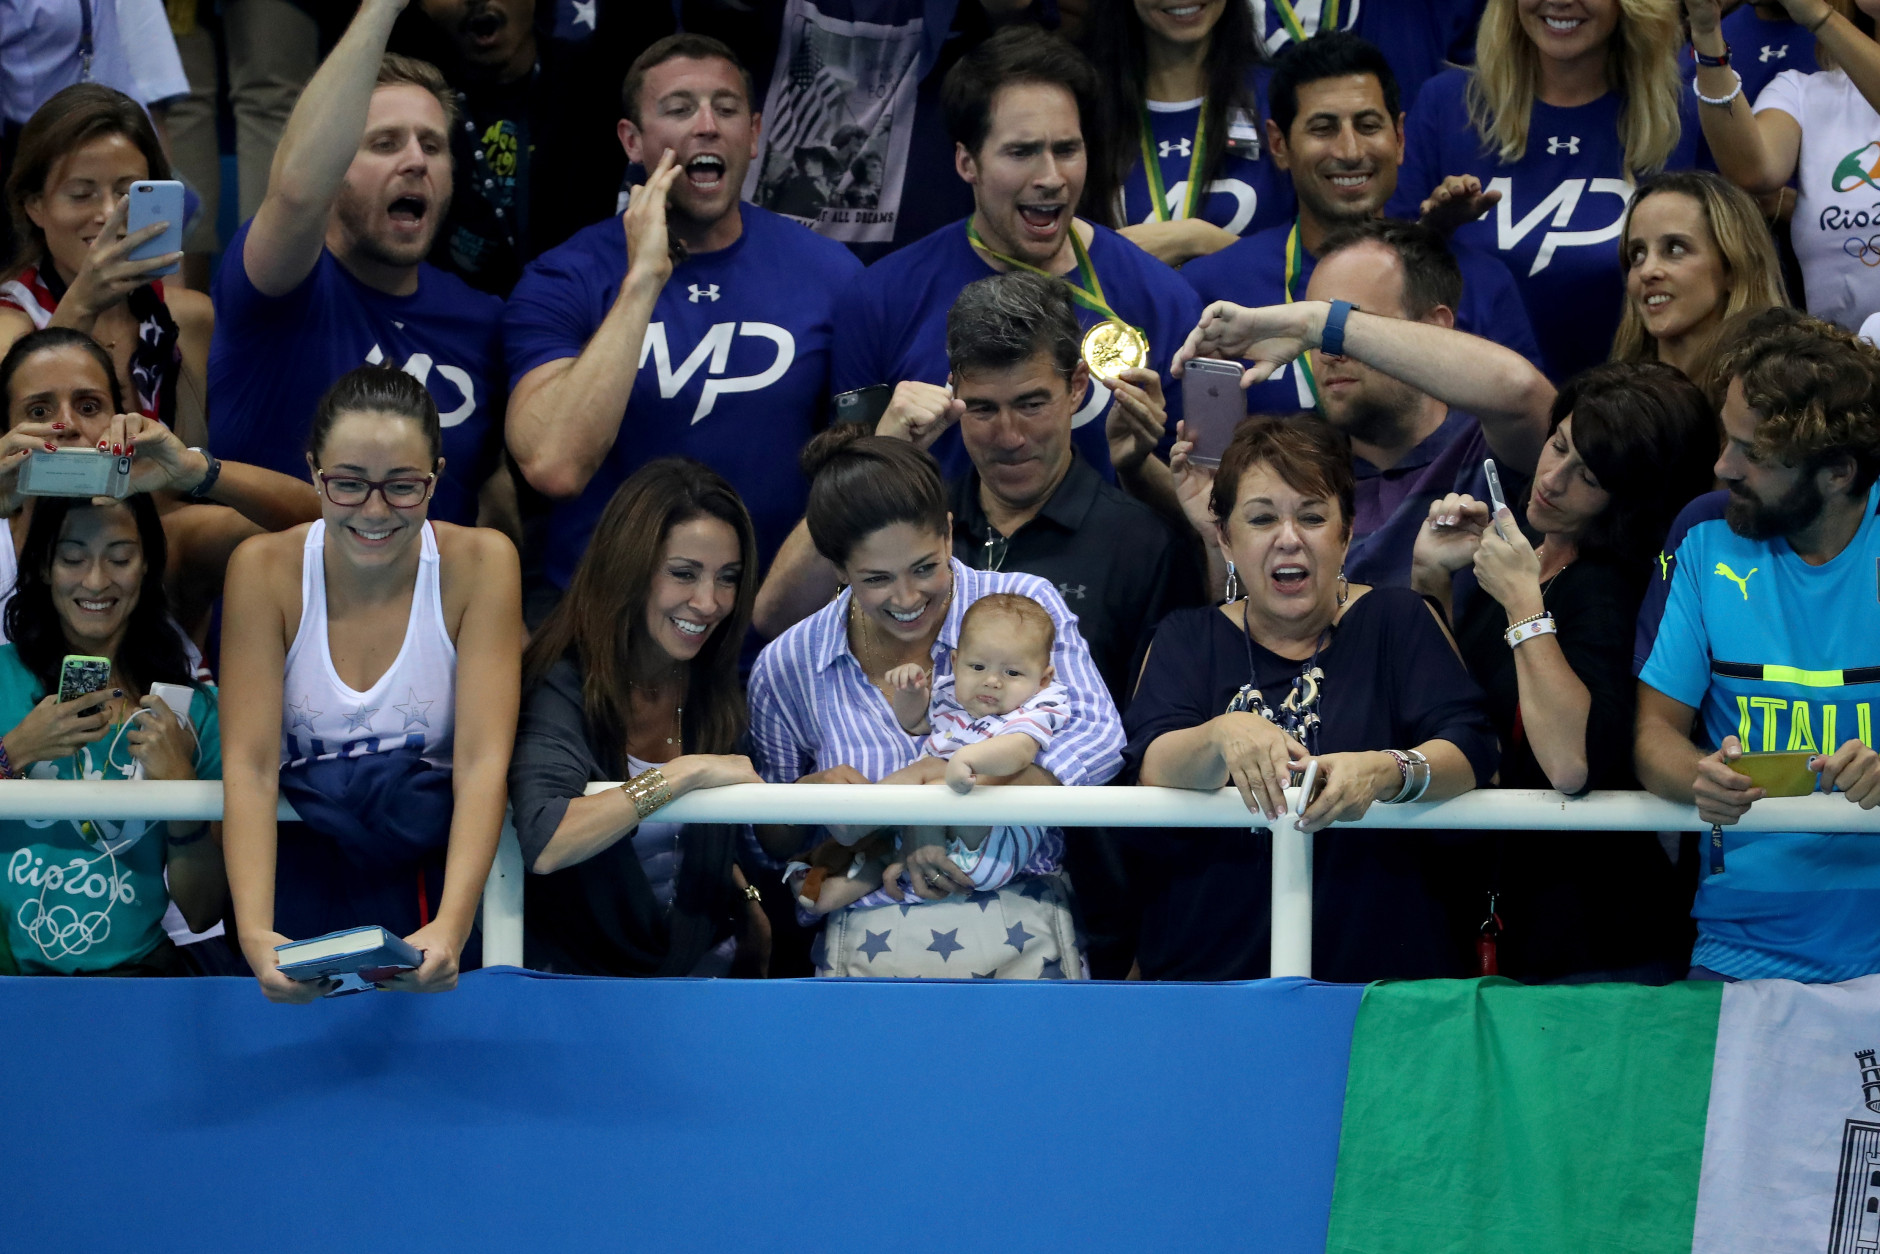 RIO DE JANEIRO, BRAZIL - AUGUST 09:  The mother of Michael Phelps of the United States, Deborah Phelps, partner Nicole Johnson and their son Boomer, celebrate the gold medal victory in the Men's 200m Butterfly Final on Day 4 of the Rio 2016 Olympic Games at the Olympic Aquatics Stadium on August 9, 2016 in Rio de Janeiro, Brazil.  (Photo by Al Bello/Getty Images)